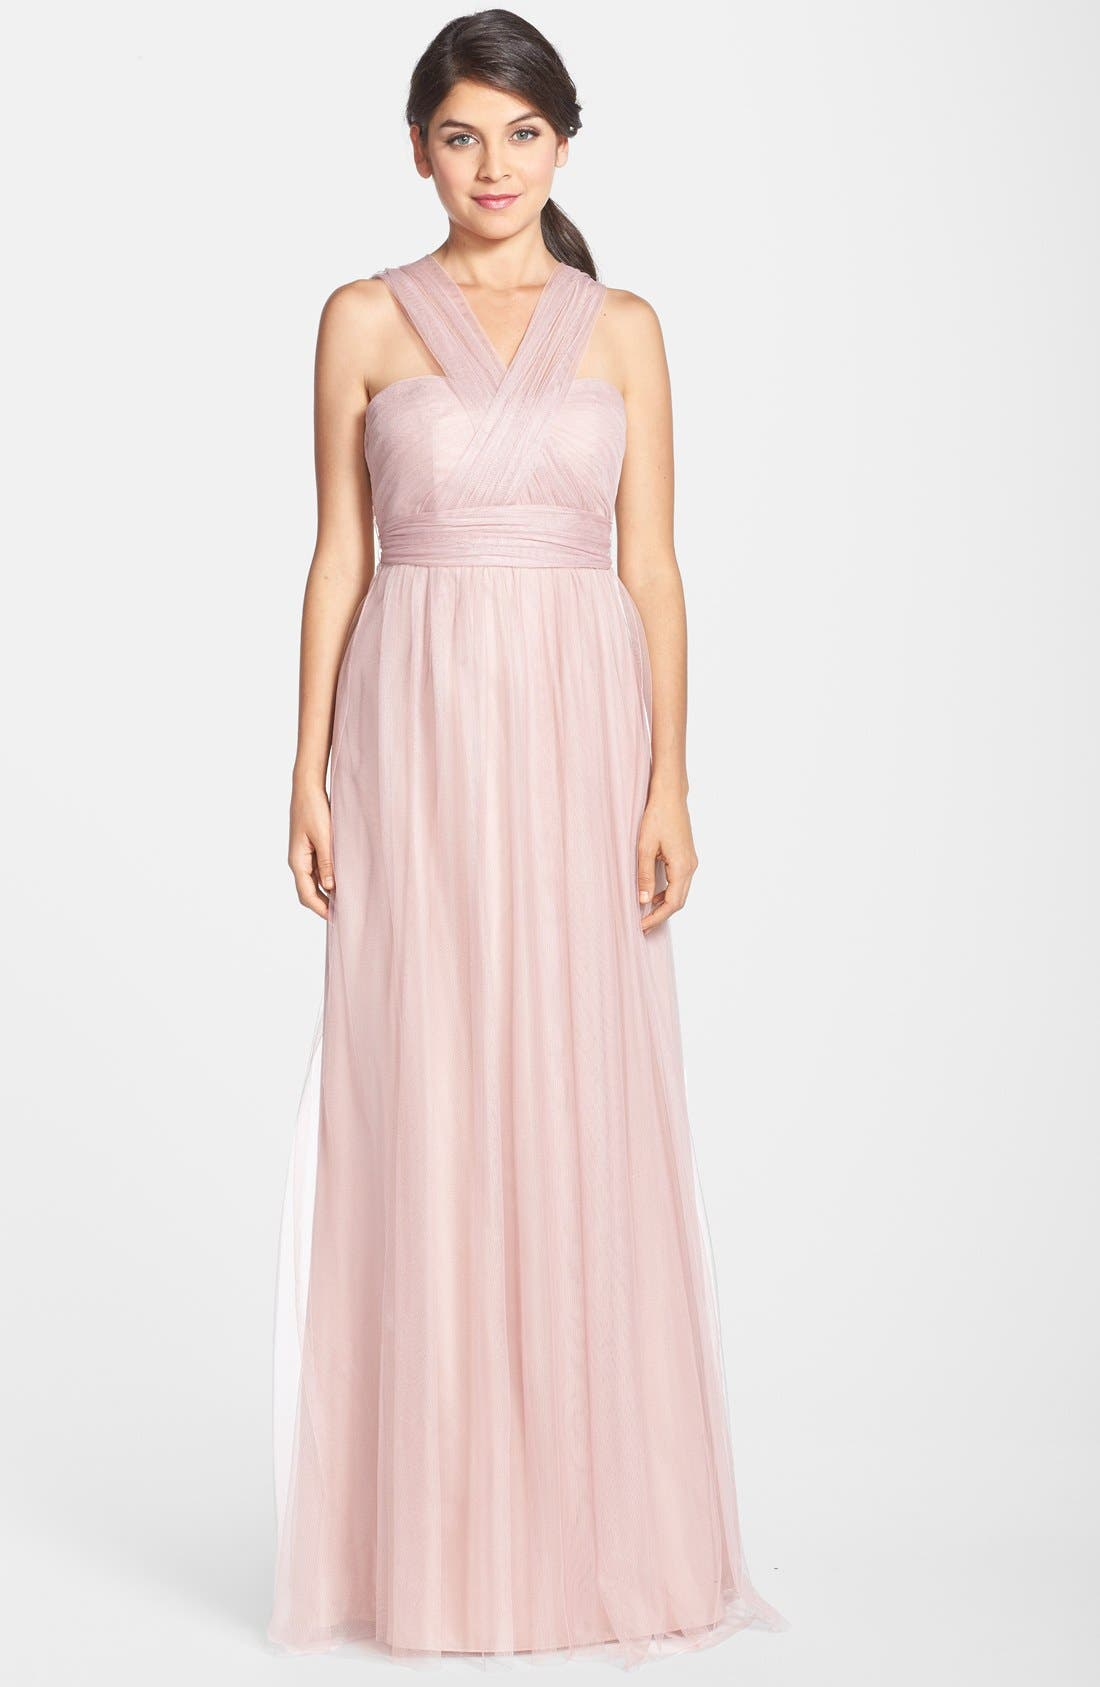 Annabelle Convertible Tulle Column Dress,                             Alternate thumbnail 77, color,